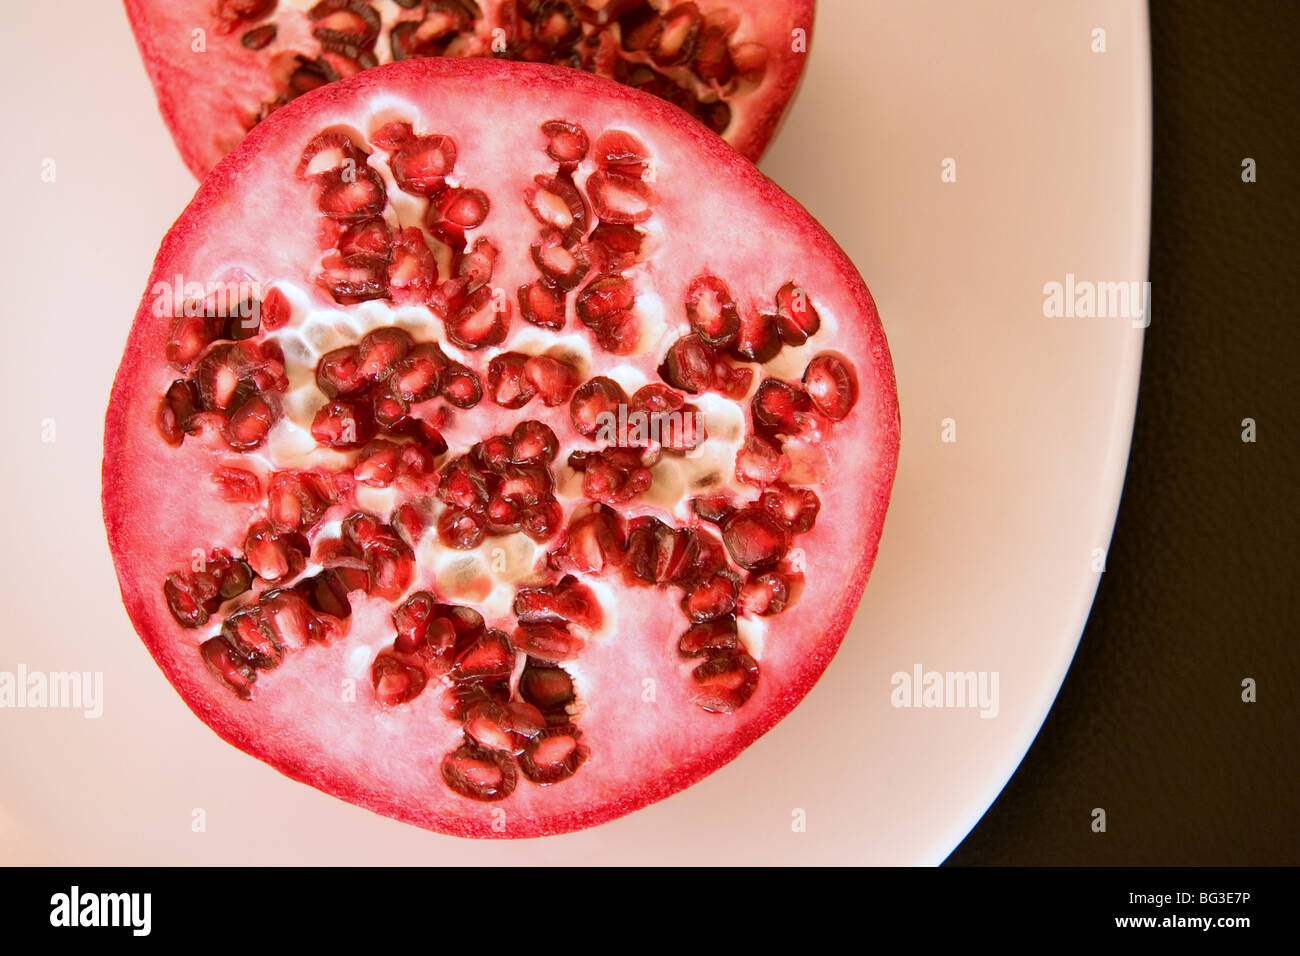 Freshly sliced pomegranate - Stock Image